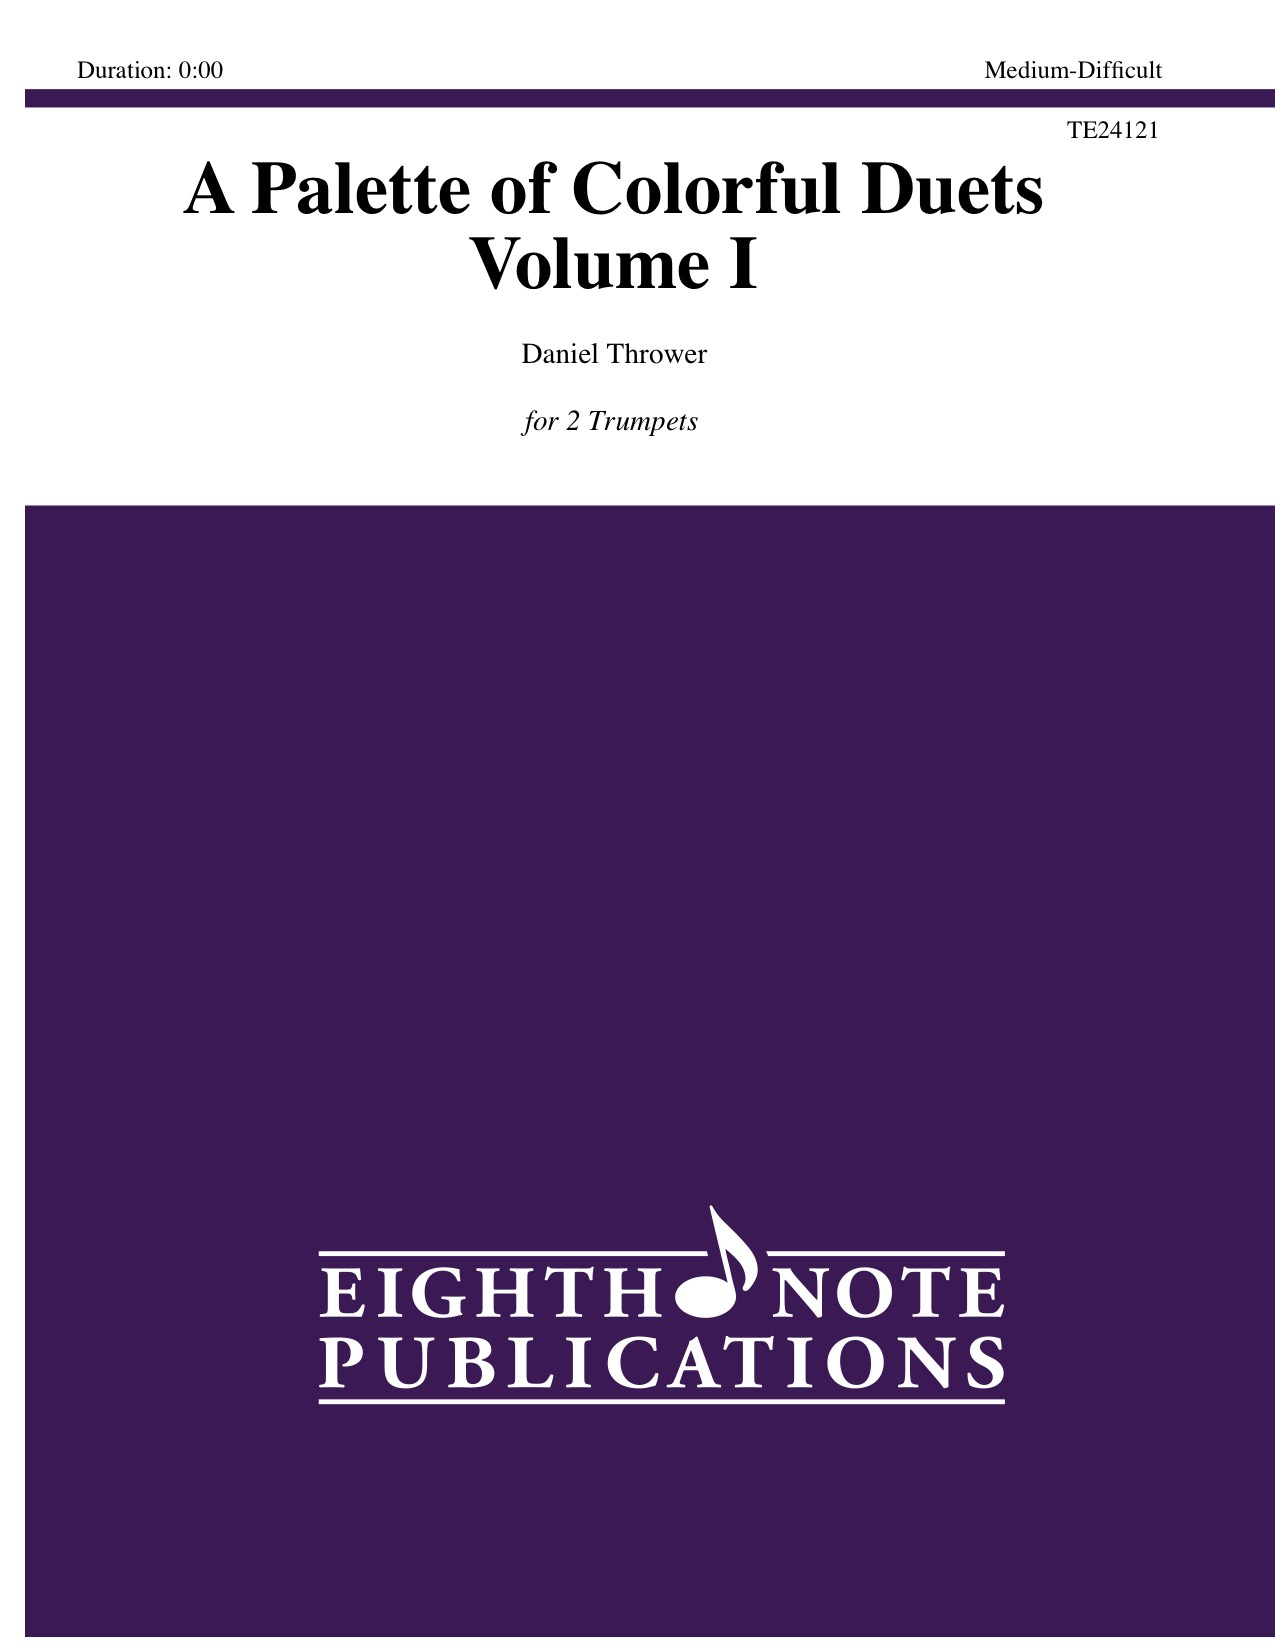 Palette of Colorful Duets, A   Volume I  - Daniel Thrower